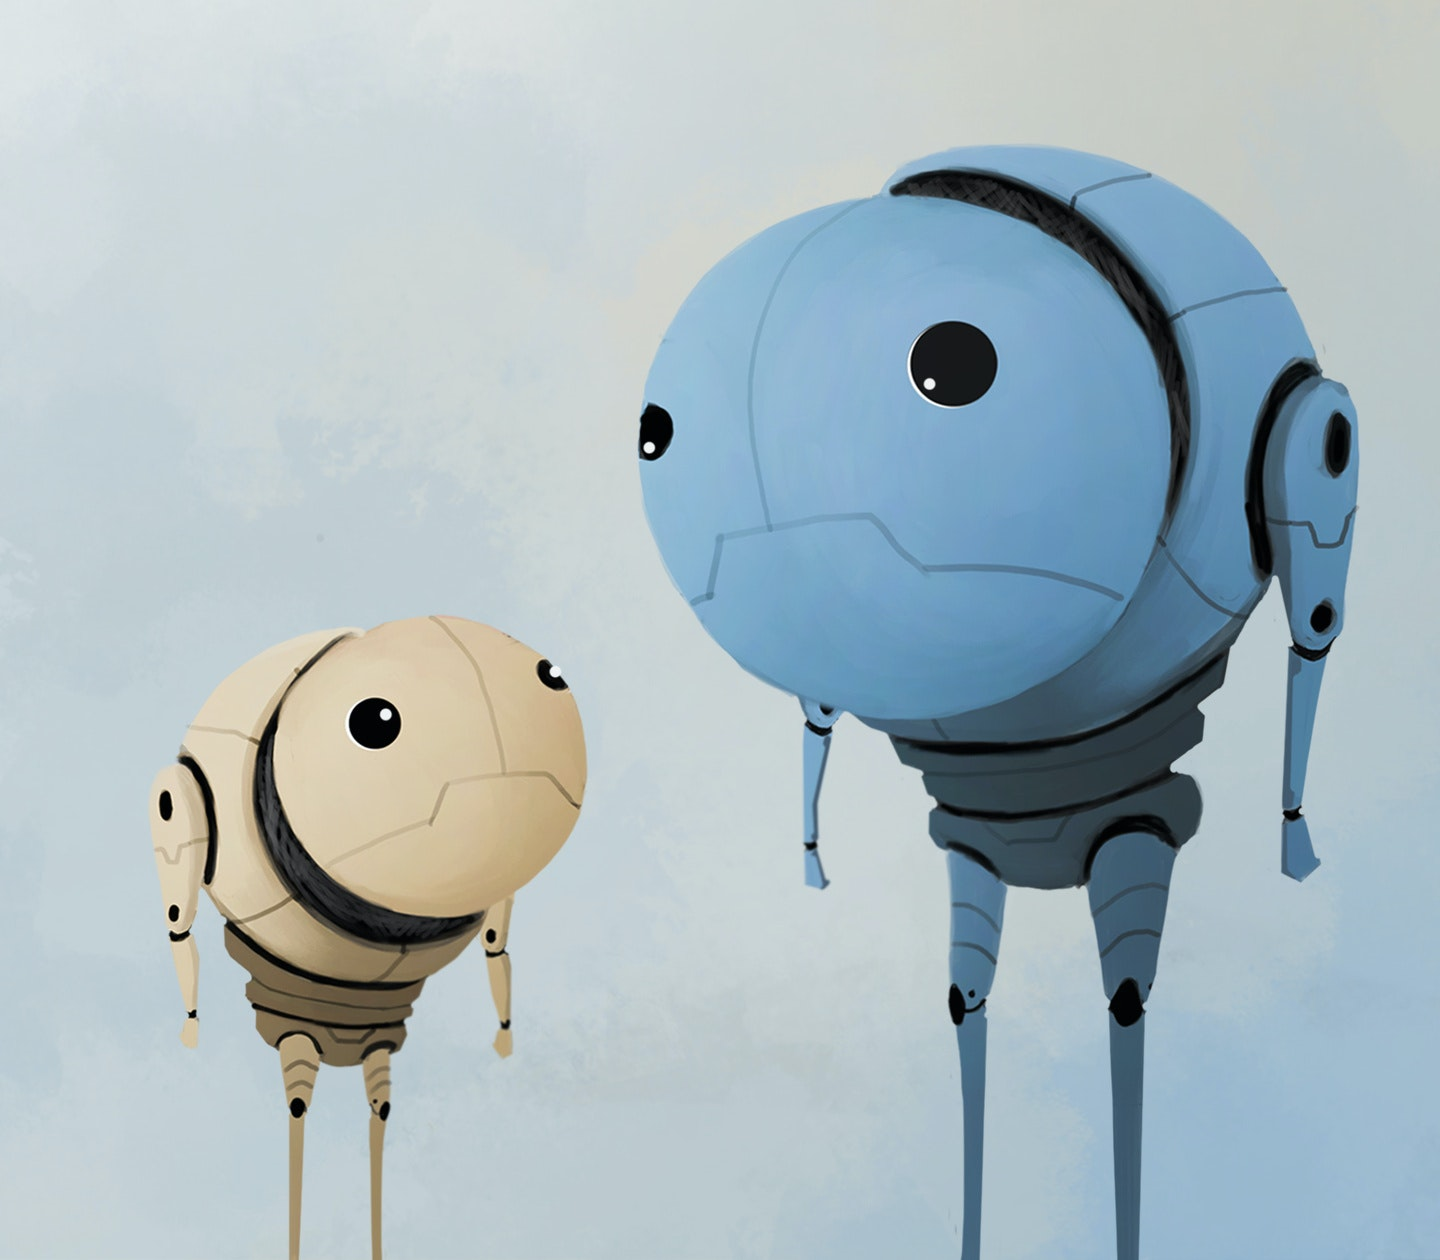 An illustration showing two robot friends